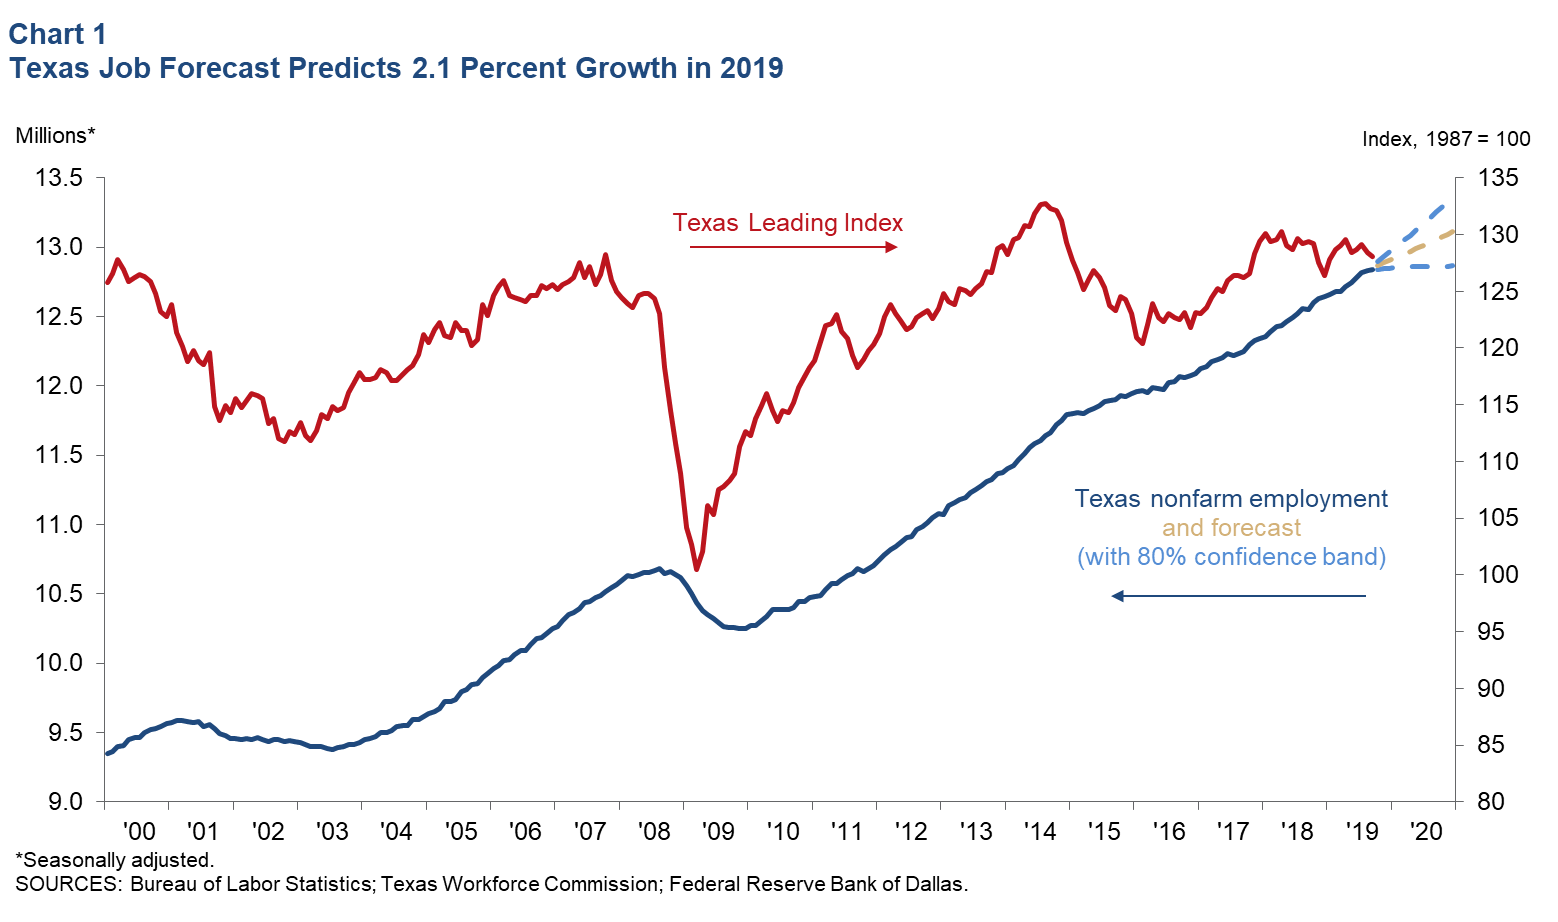 Texas Job Forecast Predicts 2.1 Percent Growth in 2019